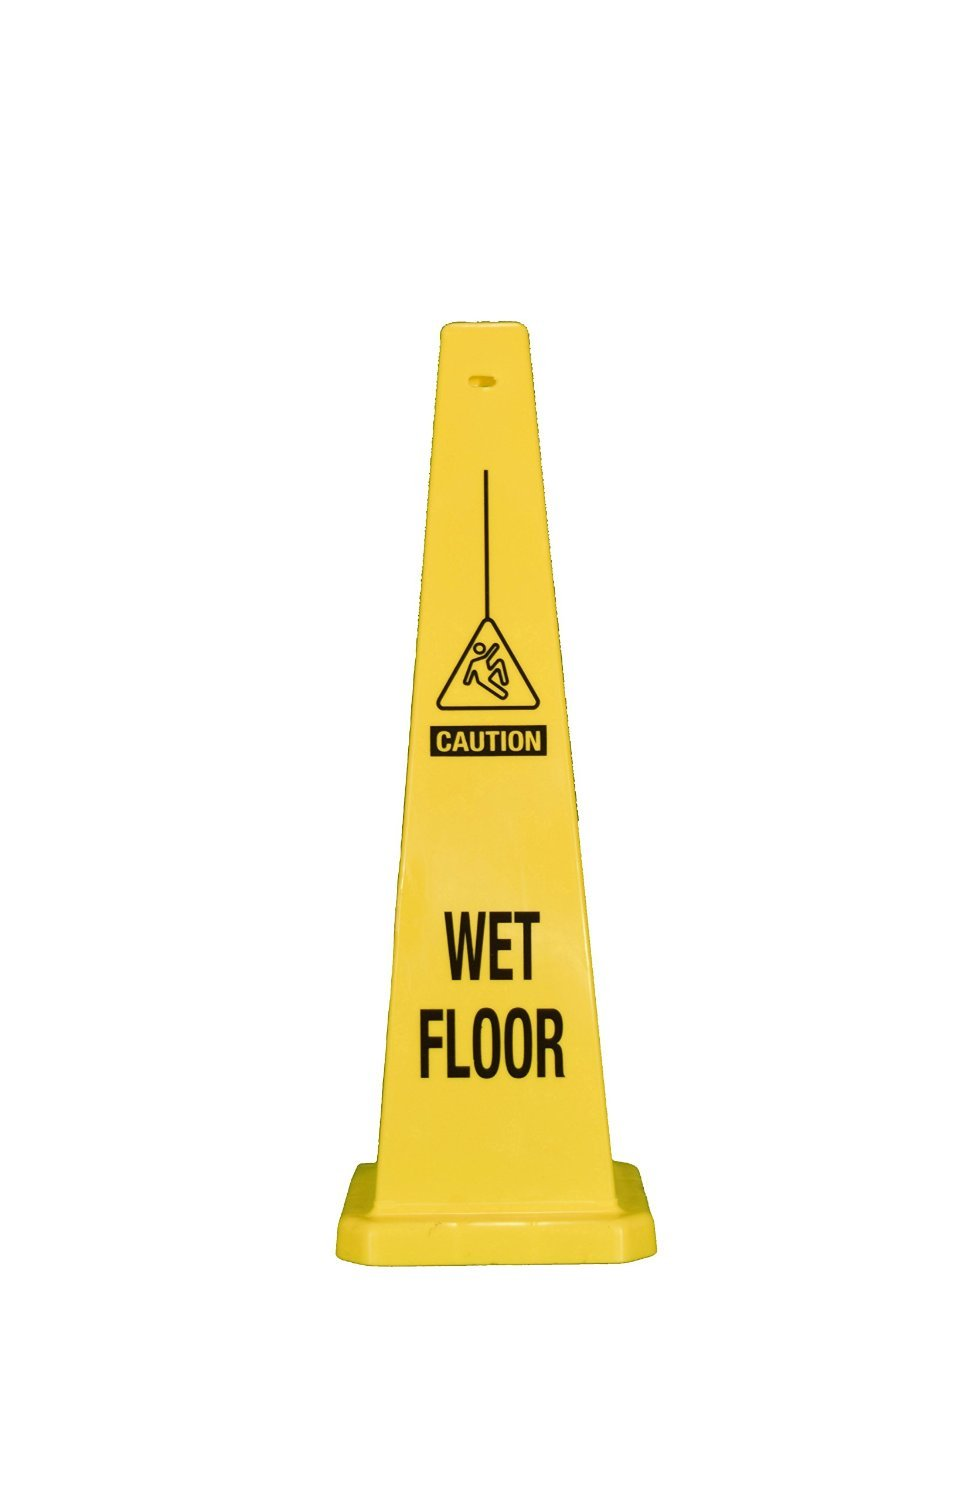 Cortina Safety Products Group 03-600-08 Cortina Safety Products 36 Yellow Traffic Floor Cone Caution Wet Floor with Pictogram, Plastic, 36'' x 36'' x 12''